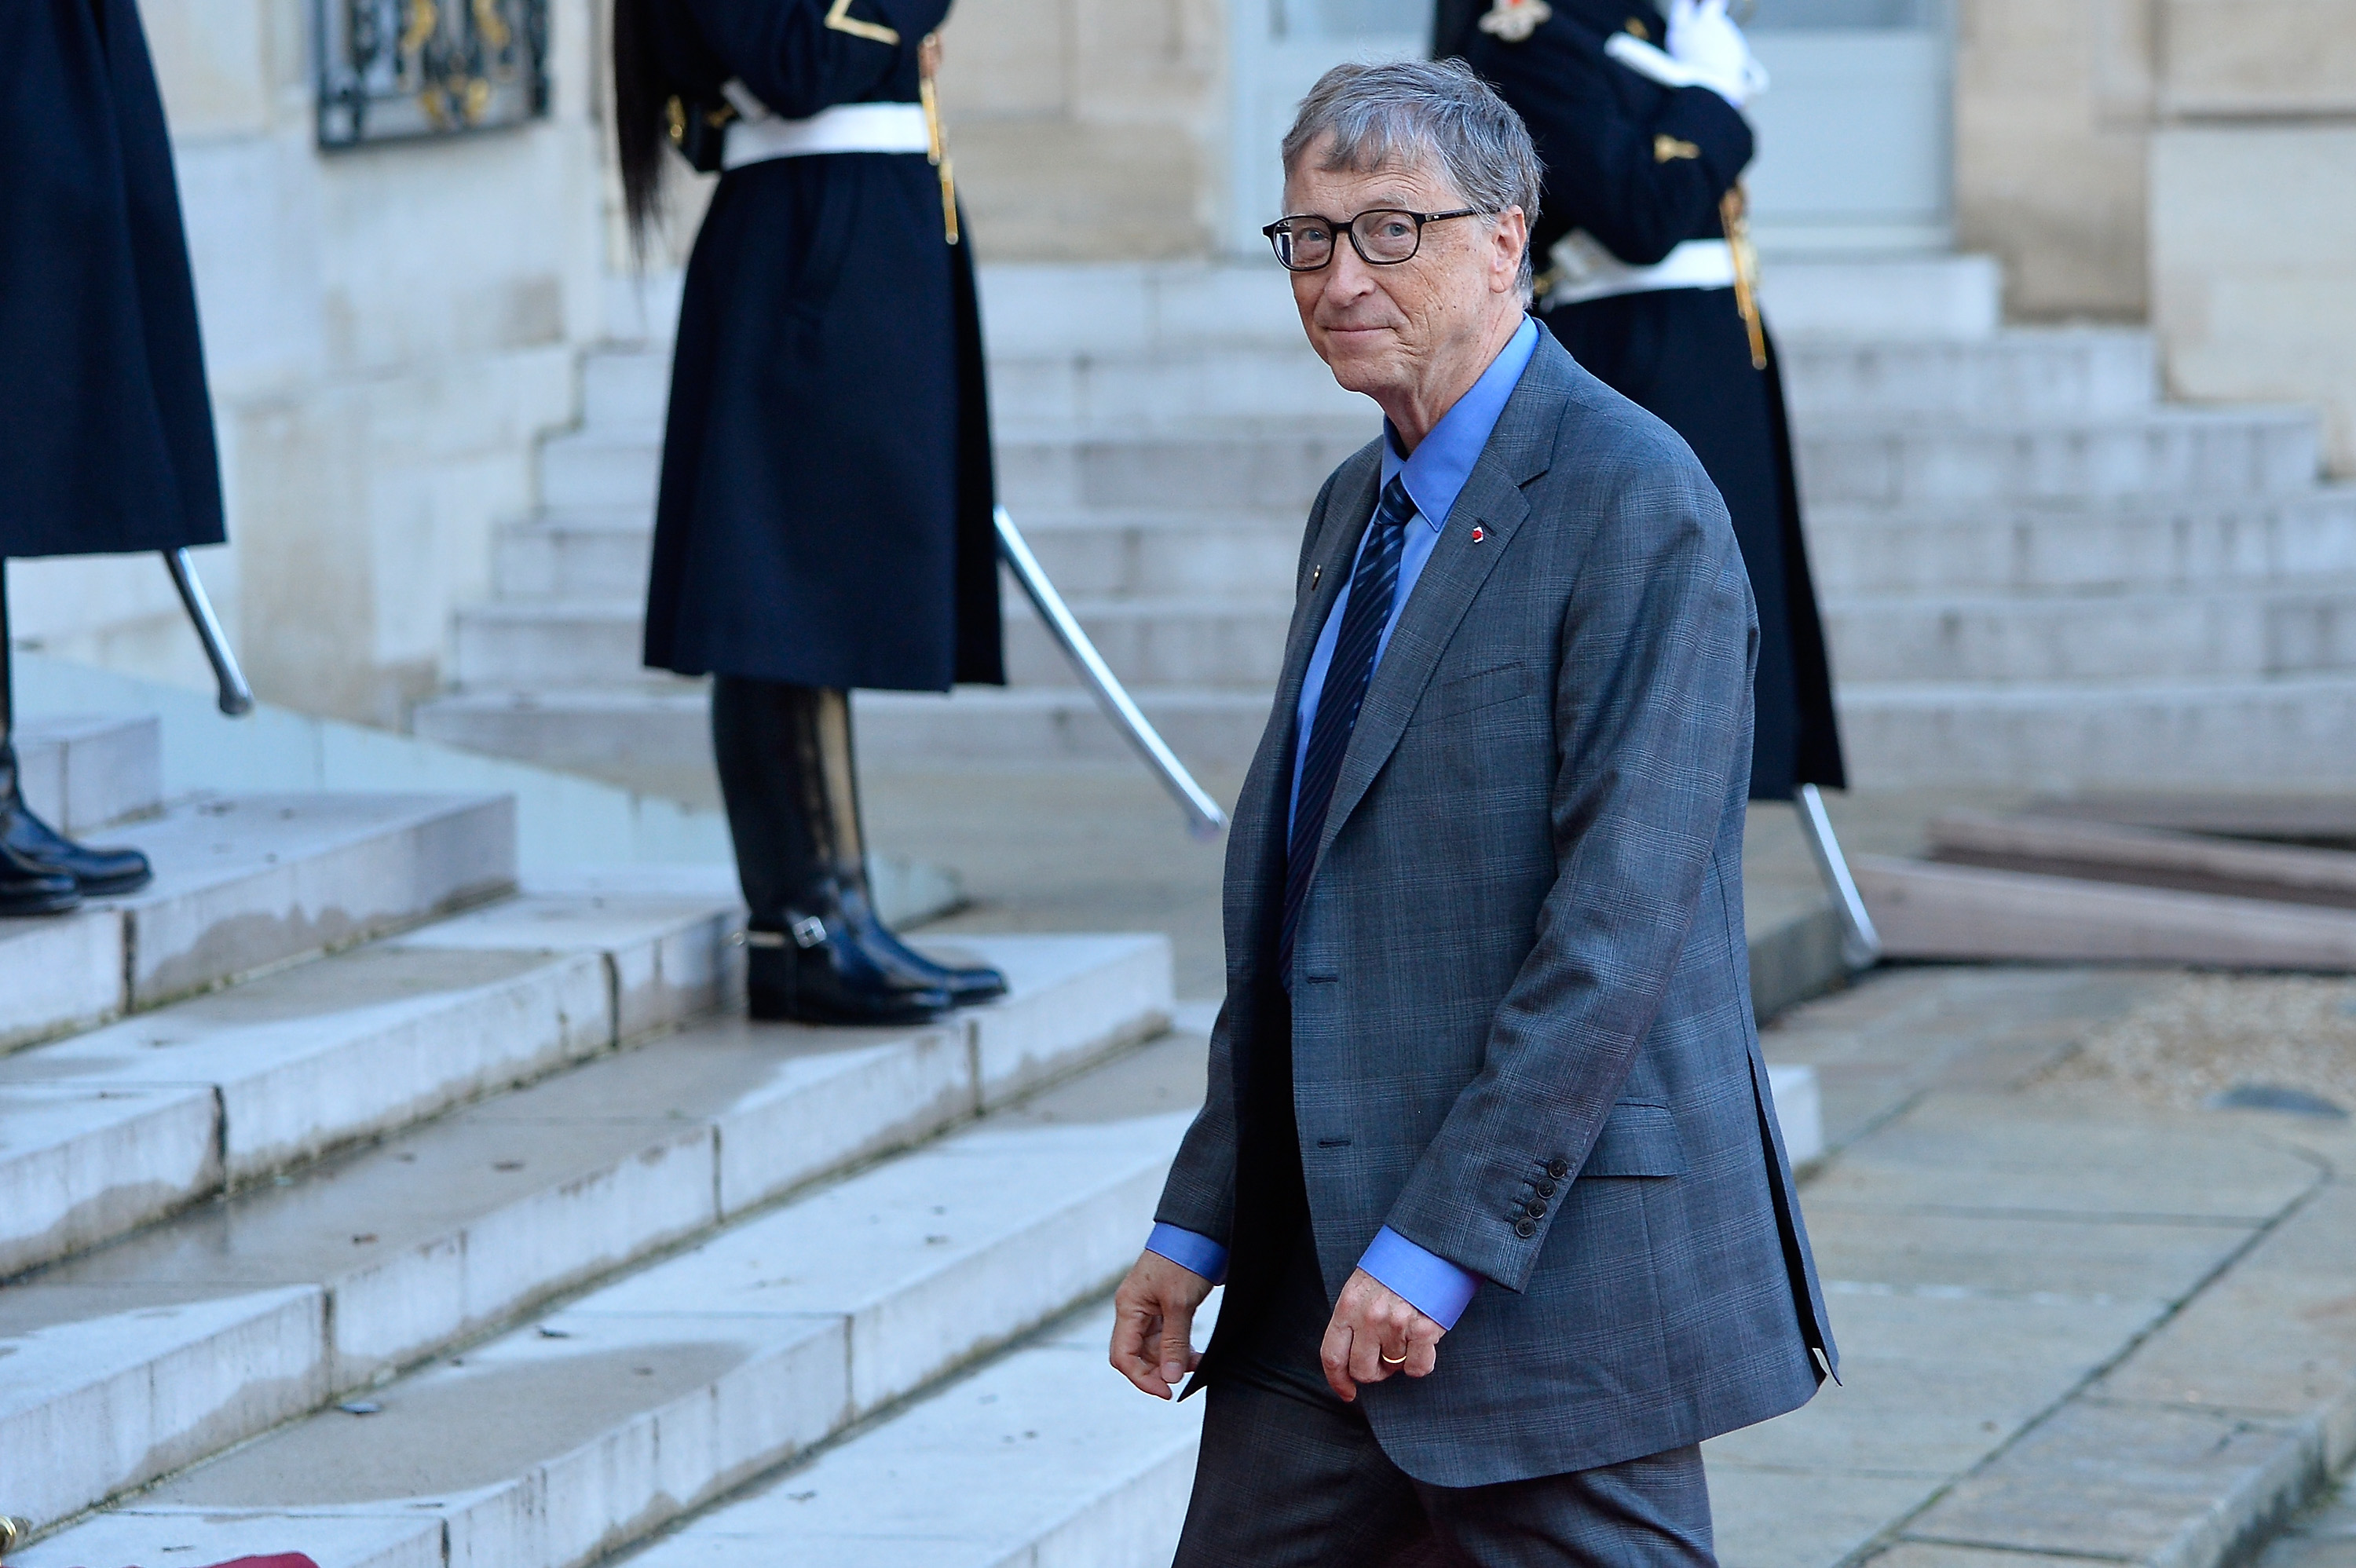 Bill Gates arrives for a meeting with French President Emmanuel Macron as he receives the One Planet Summit's international leaders at Elysee Palace on December 12, 2017 in Paris, France. Macron is hosting the One climate summit, which gathers world leaders, philantropists and other committed private individuals to discuss climate change.